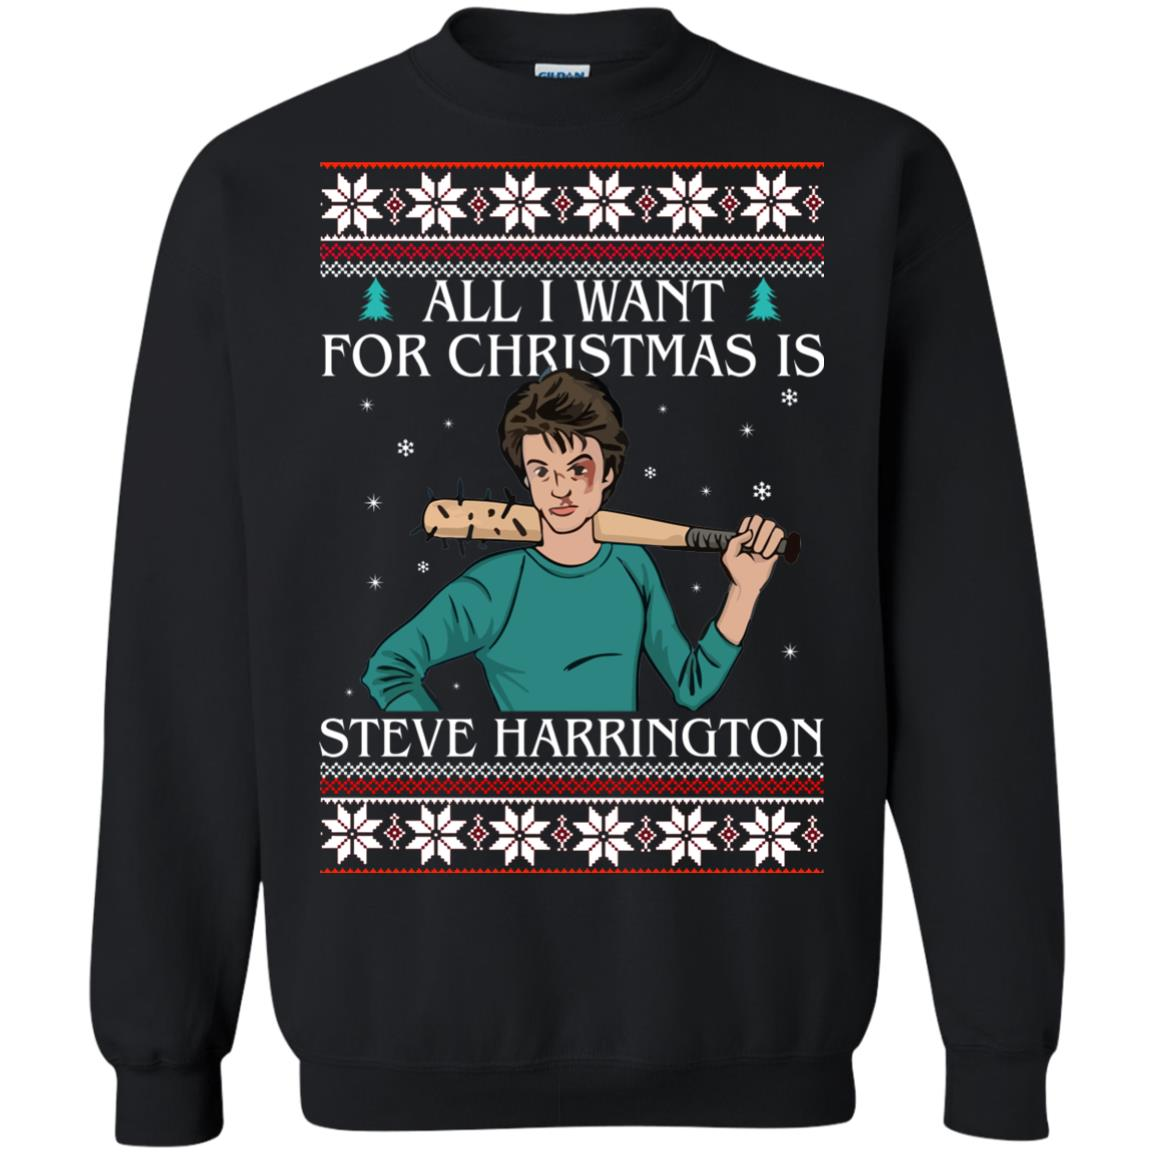 image 4034 - All I want for Christmas is Steve Harrington Ugly Sweater